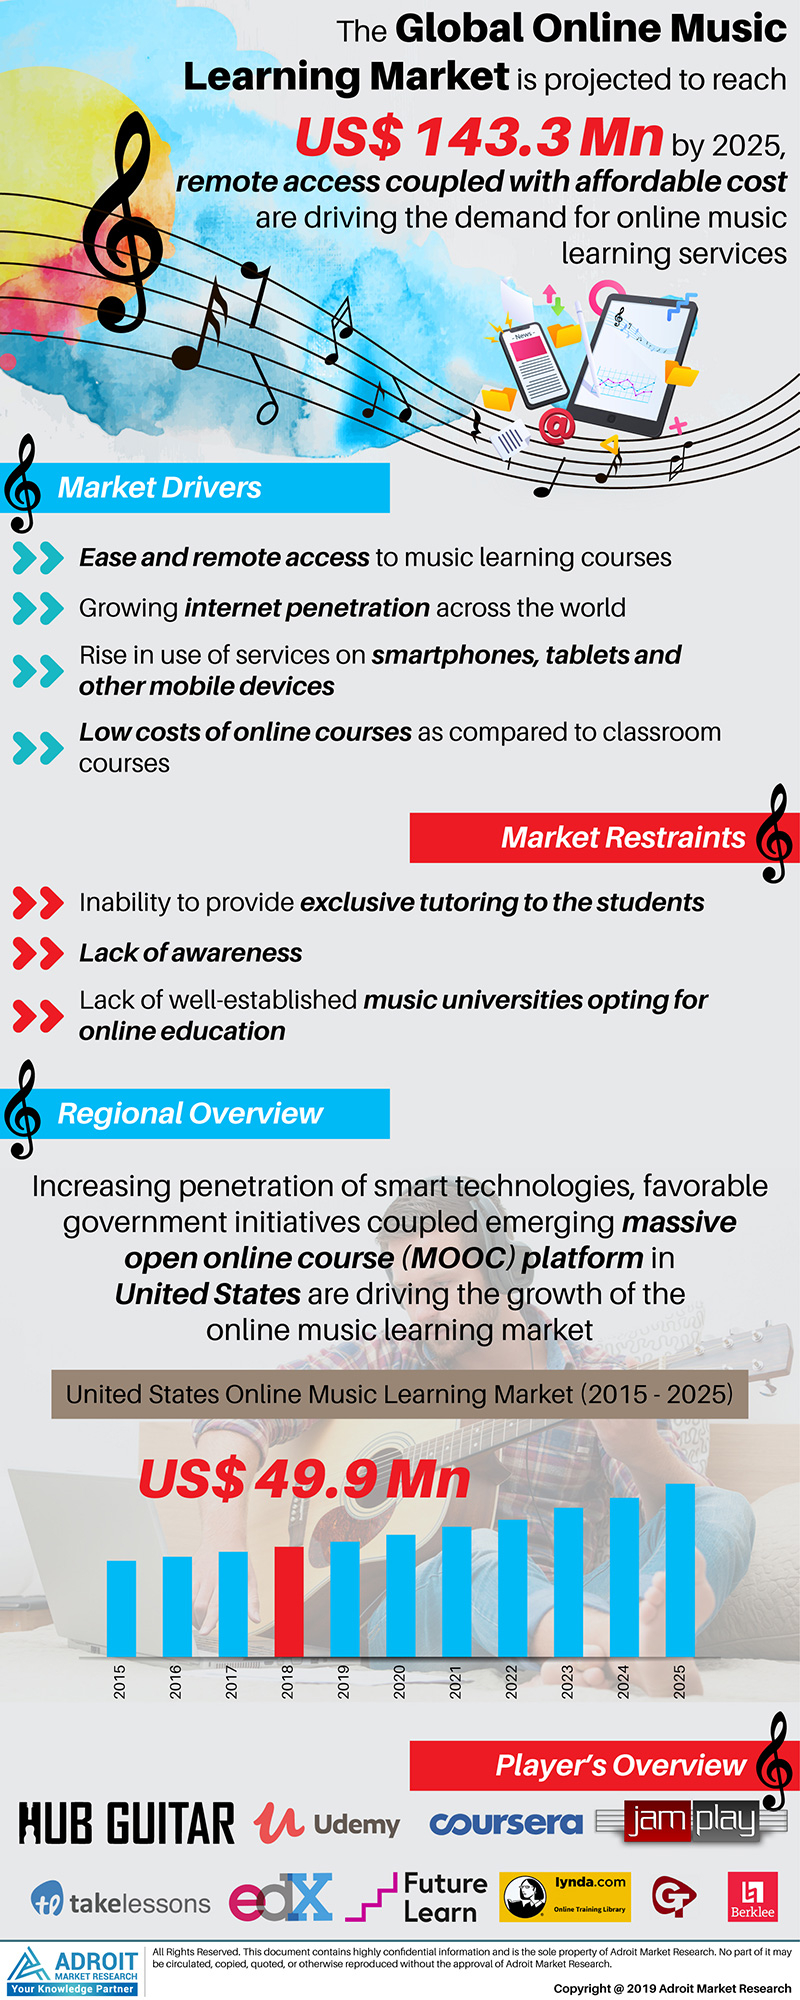 Global online music learning market